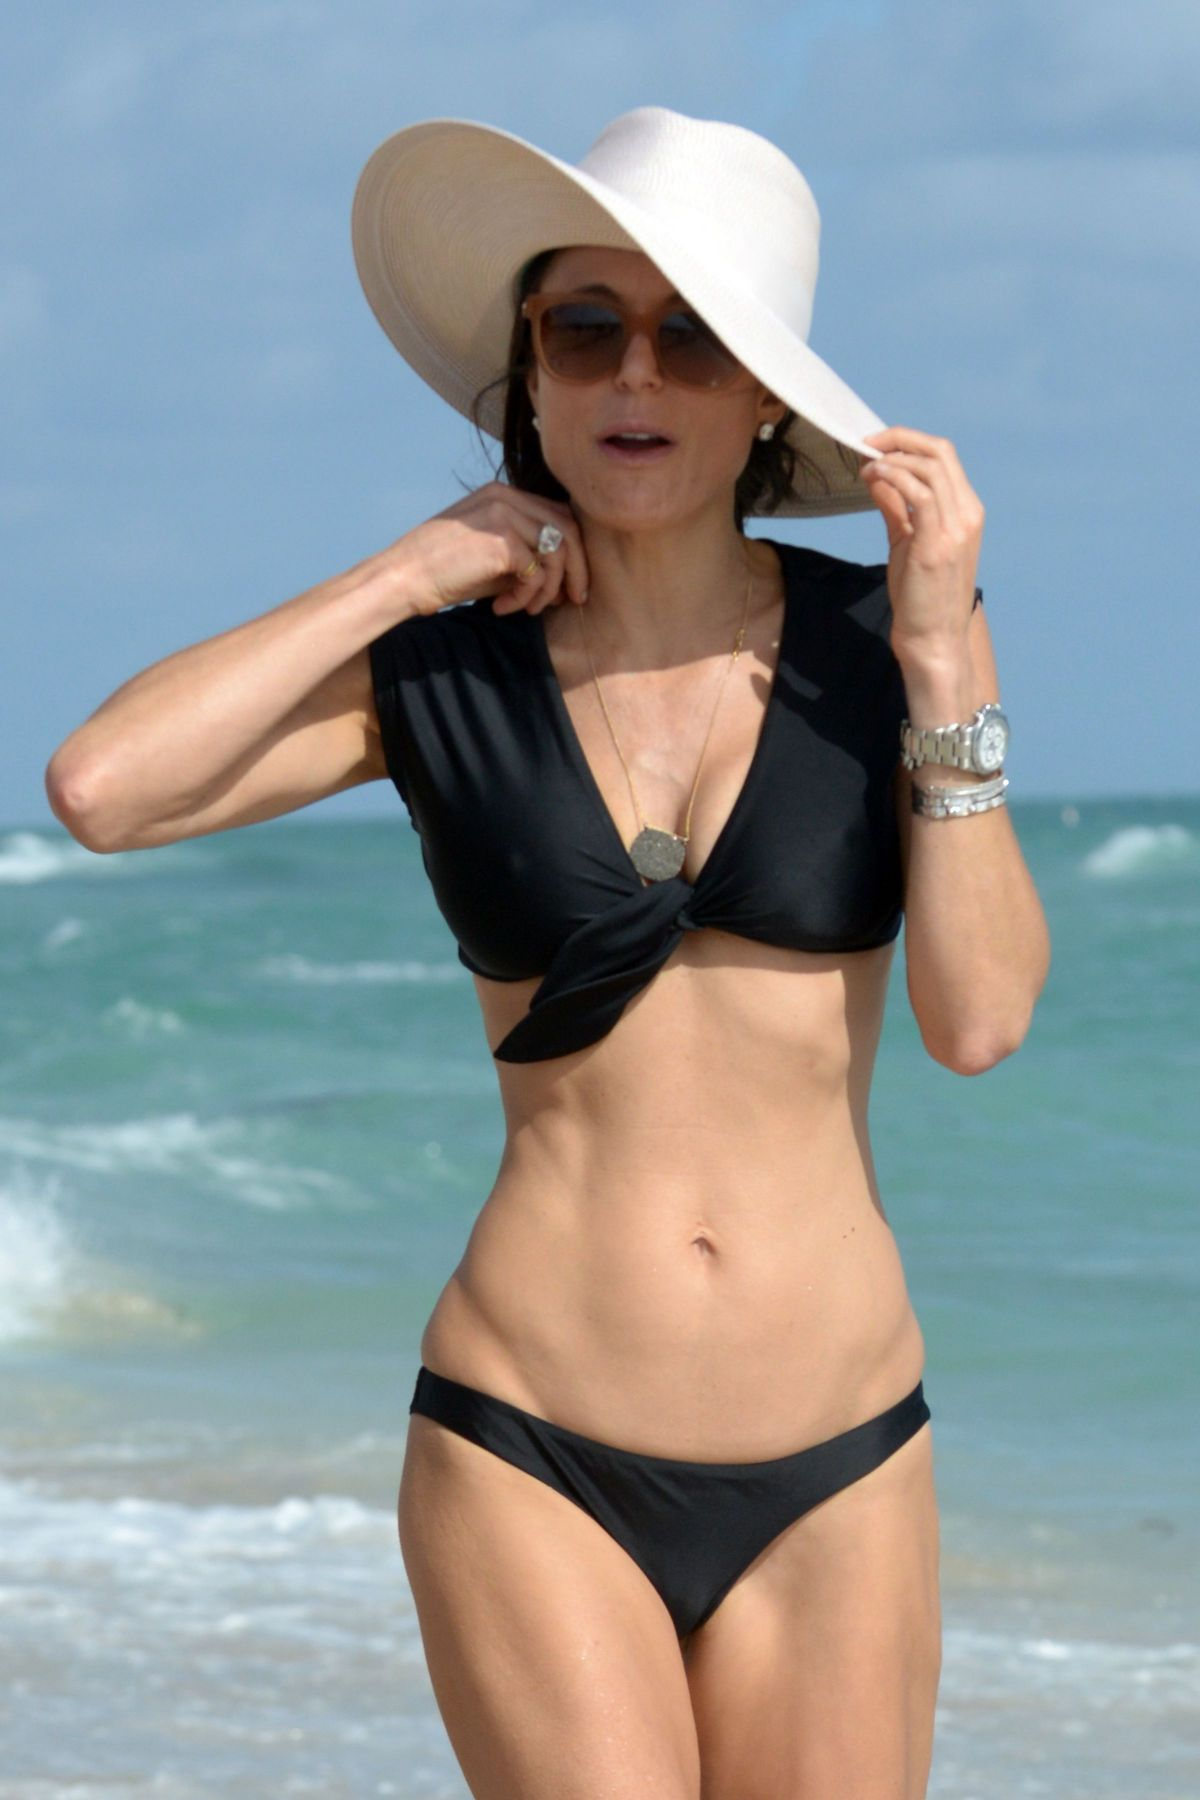 BETHENNY FRANKEL in Bikini on the Beach in Miami 12/05/2016   bethenny-frankel-in-bikini-on-the-beach-in-miami-12-05-2016_19